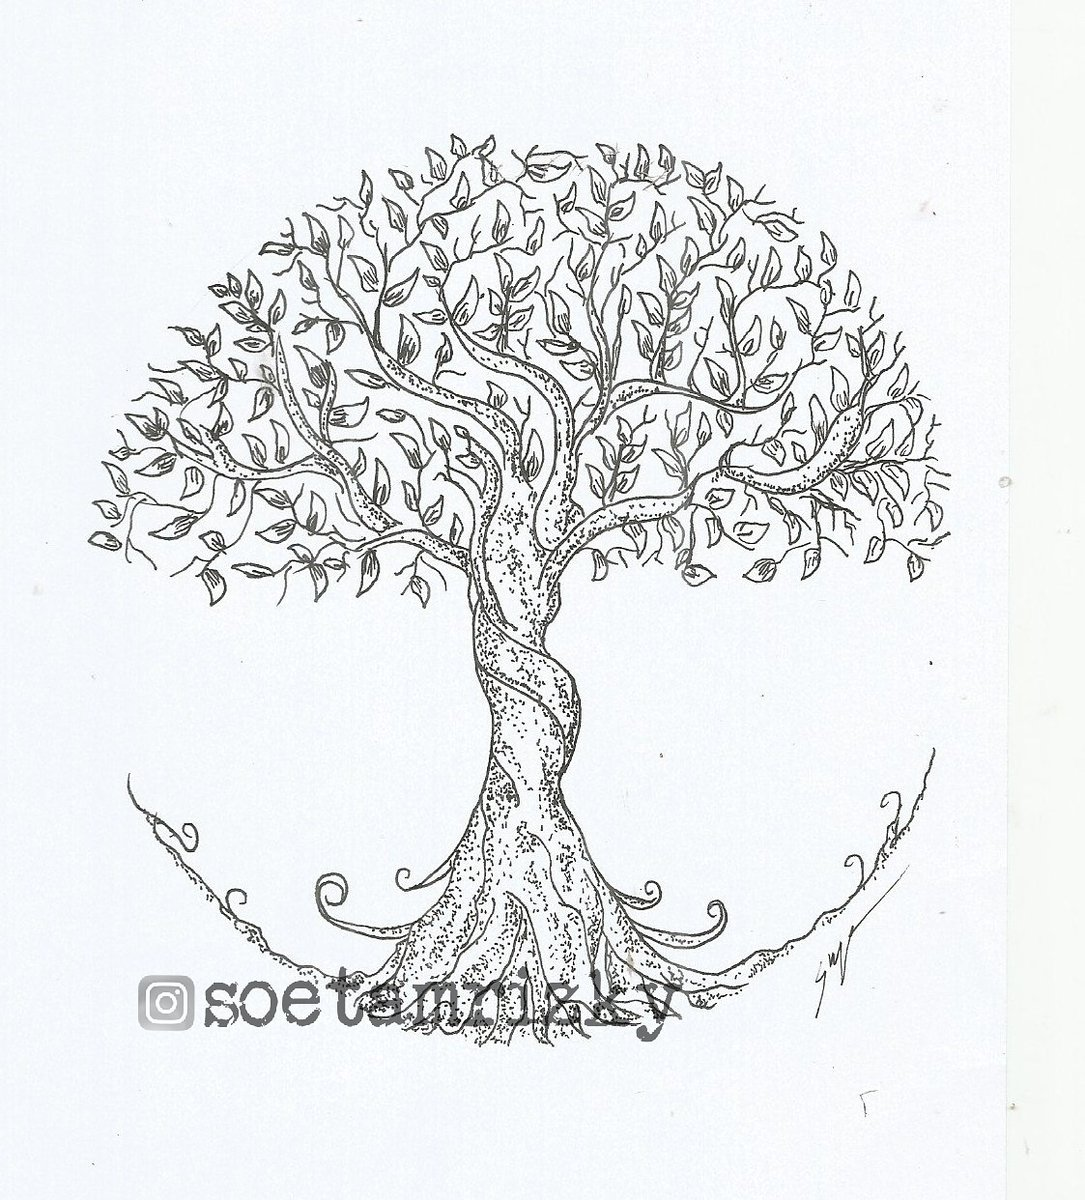 Soetam Rizky On Twitter Big Tree Ink Tree Instablackandwhite Art Illustration Drawing Draw Picture Artist Sketch Sketchbook Trees Ink Inkedartgroup Artsy Instaart Instagood Gallery Creative Bonsai Photooftheday Instaartist